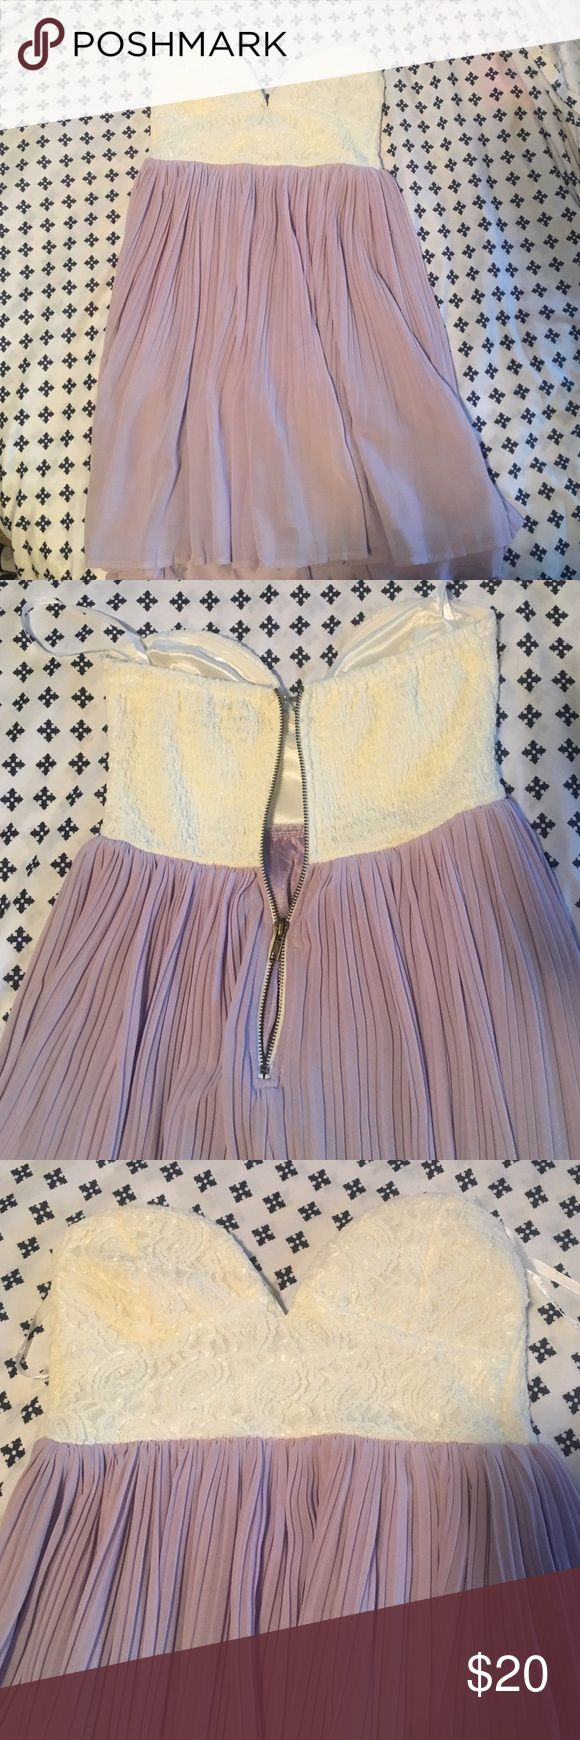 Lavender strapless dress *READ DESCRIPTION* This dress is absolutely gorgeous!! White lace top with a lavender tulle bottom. This has only been worn to try on. BUT the zipper is broken! The zipper doesn't come together as you zip it, see picture. Please take that into consideration when purchasing. Would suggest purchasing if you know how to fix the zipper, I've tried! However if you get the zipper fixed, it is an absolutely gorgeous dress in perfect condition - just been hanging in my…